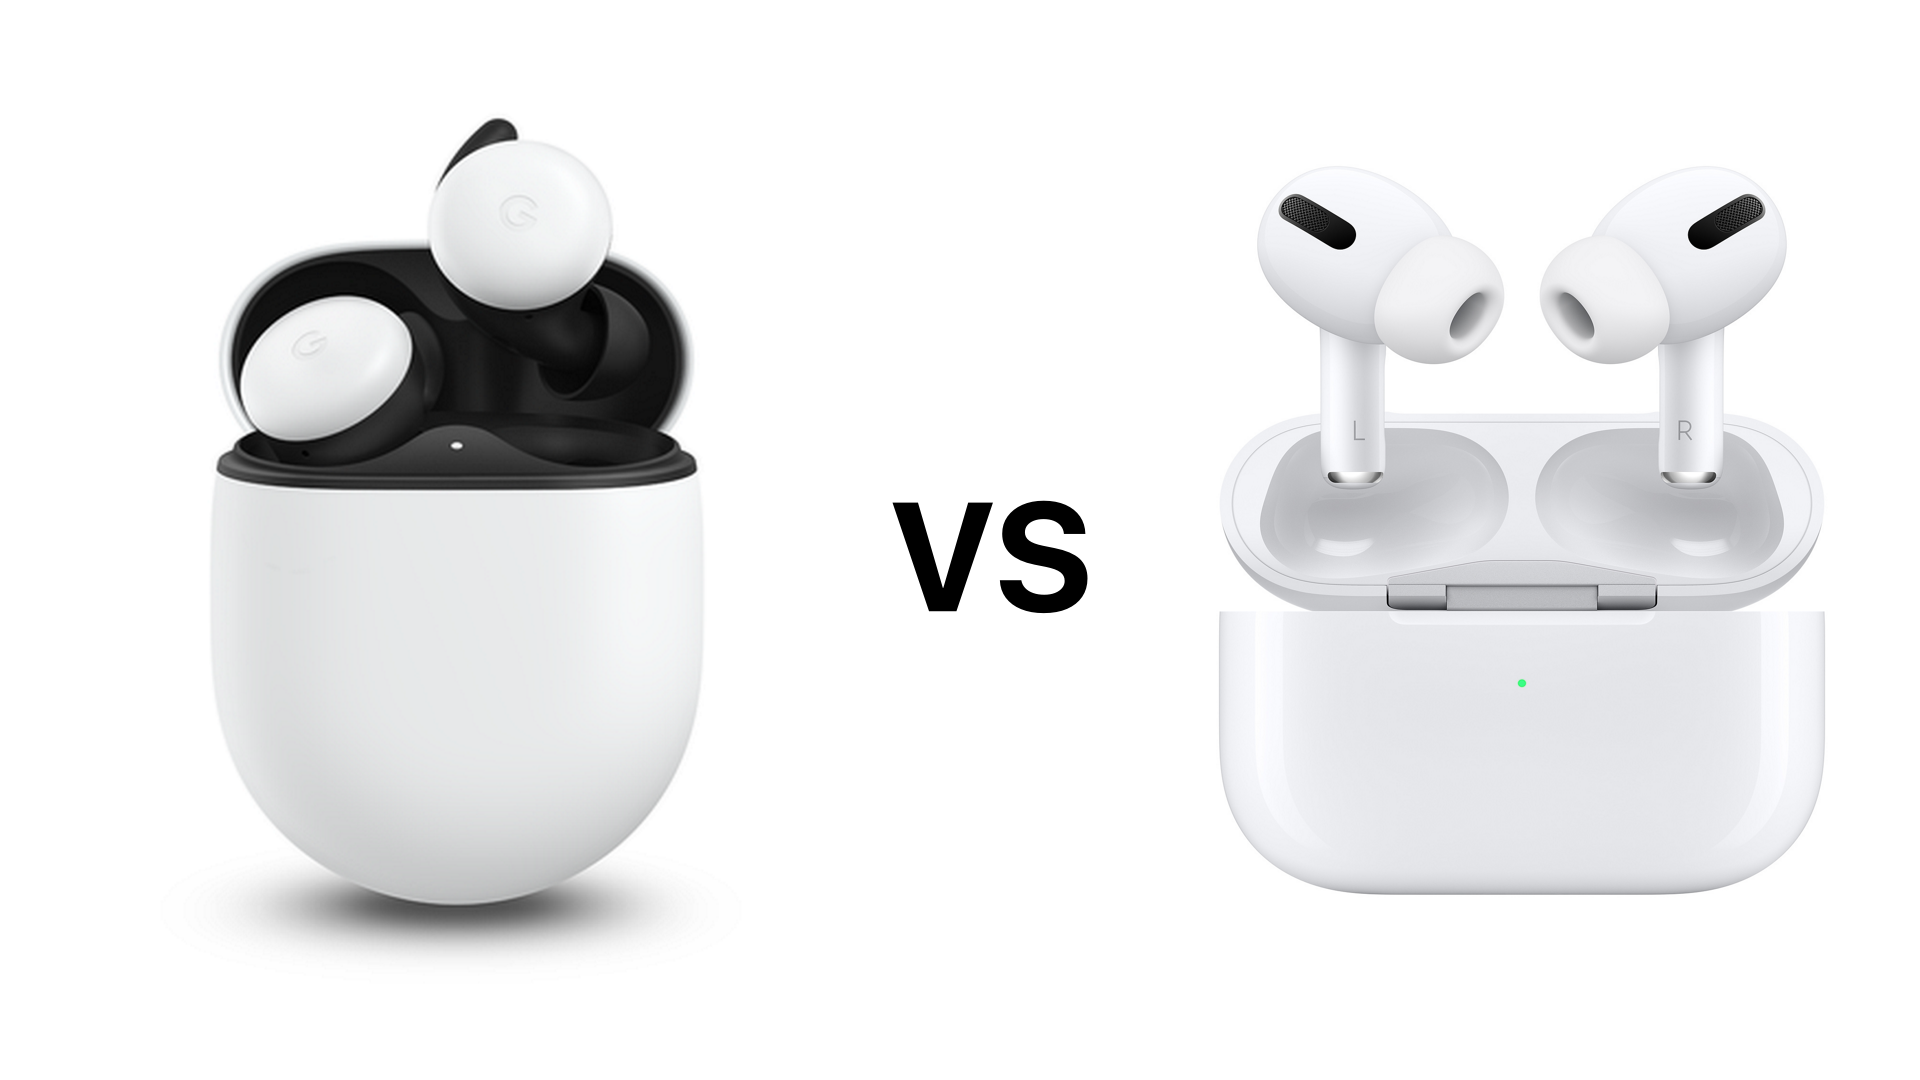 Google S Pixel Buds Vs Apple S Airpods Pro Which One Should You Buy Apple Airpods Pro Pixel